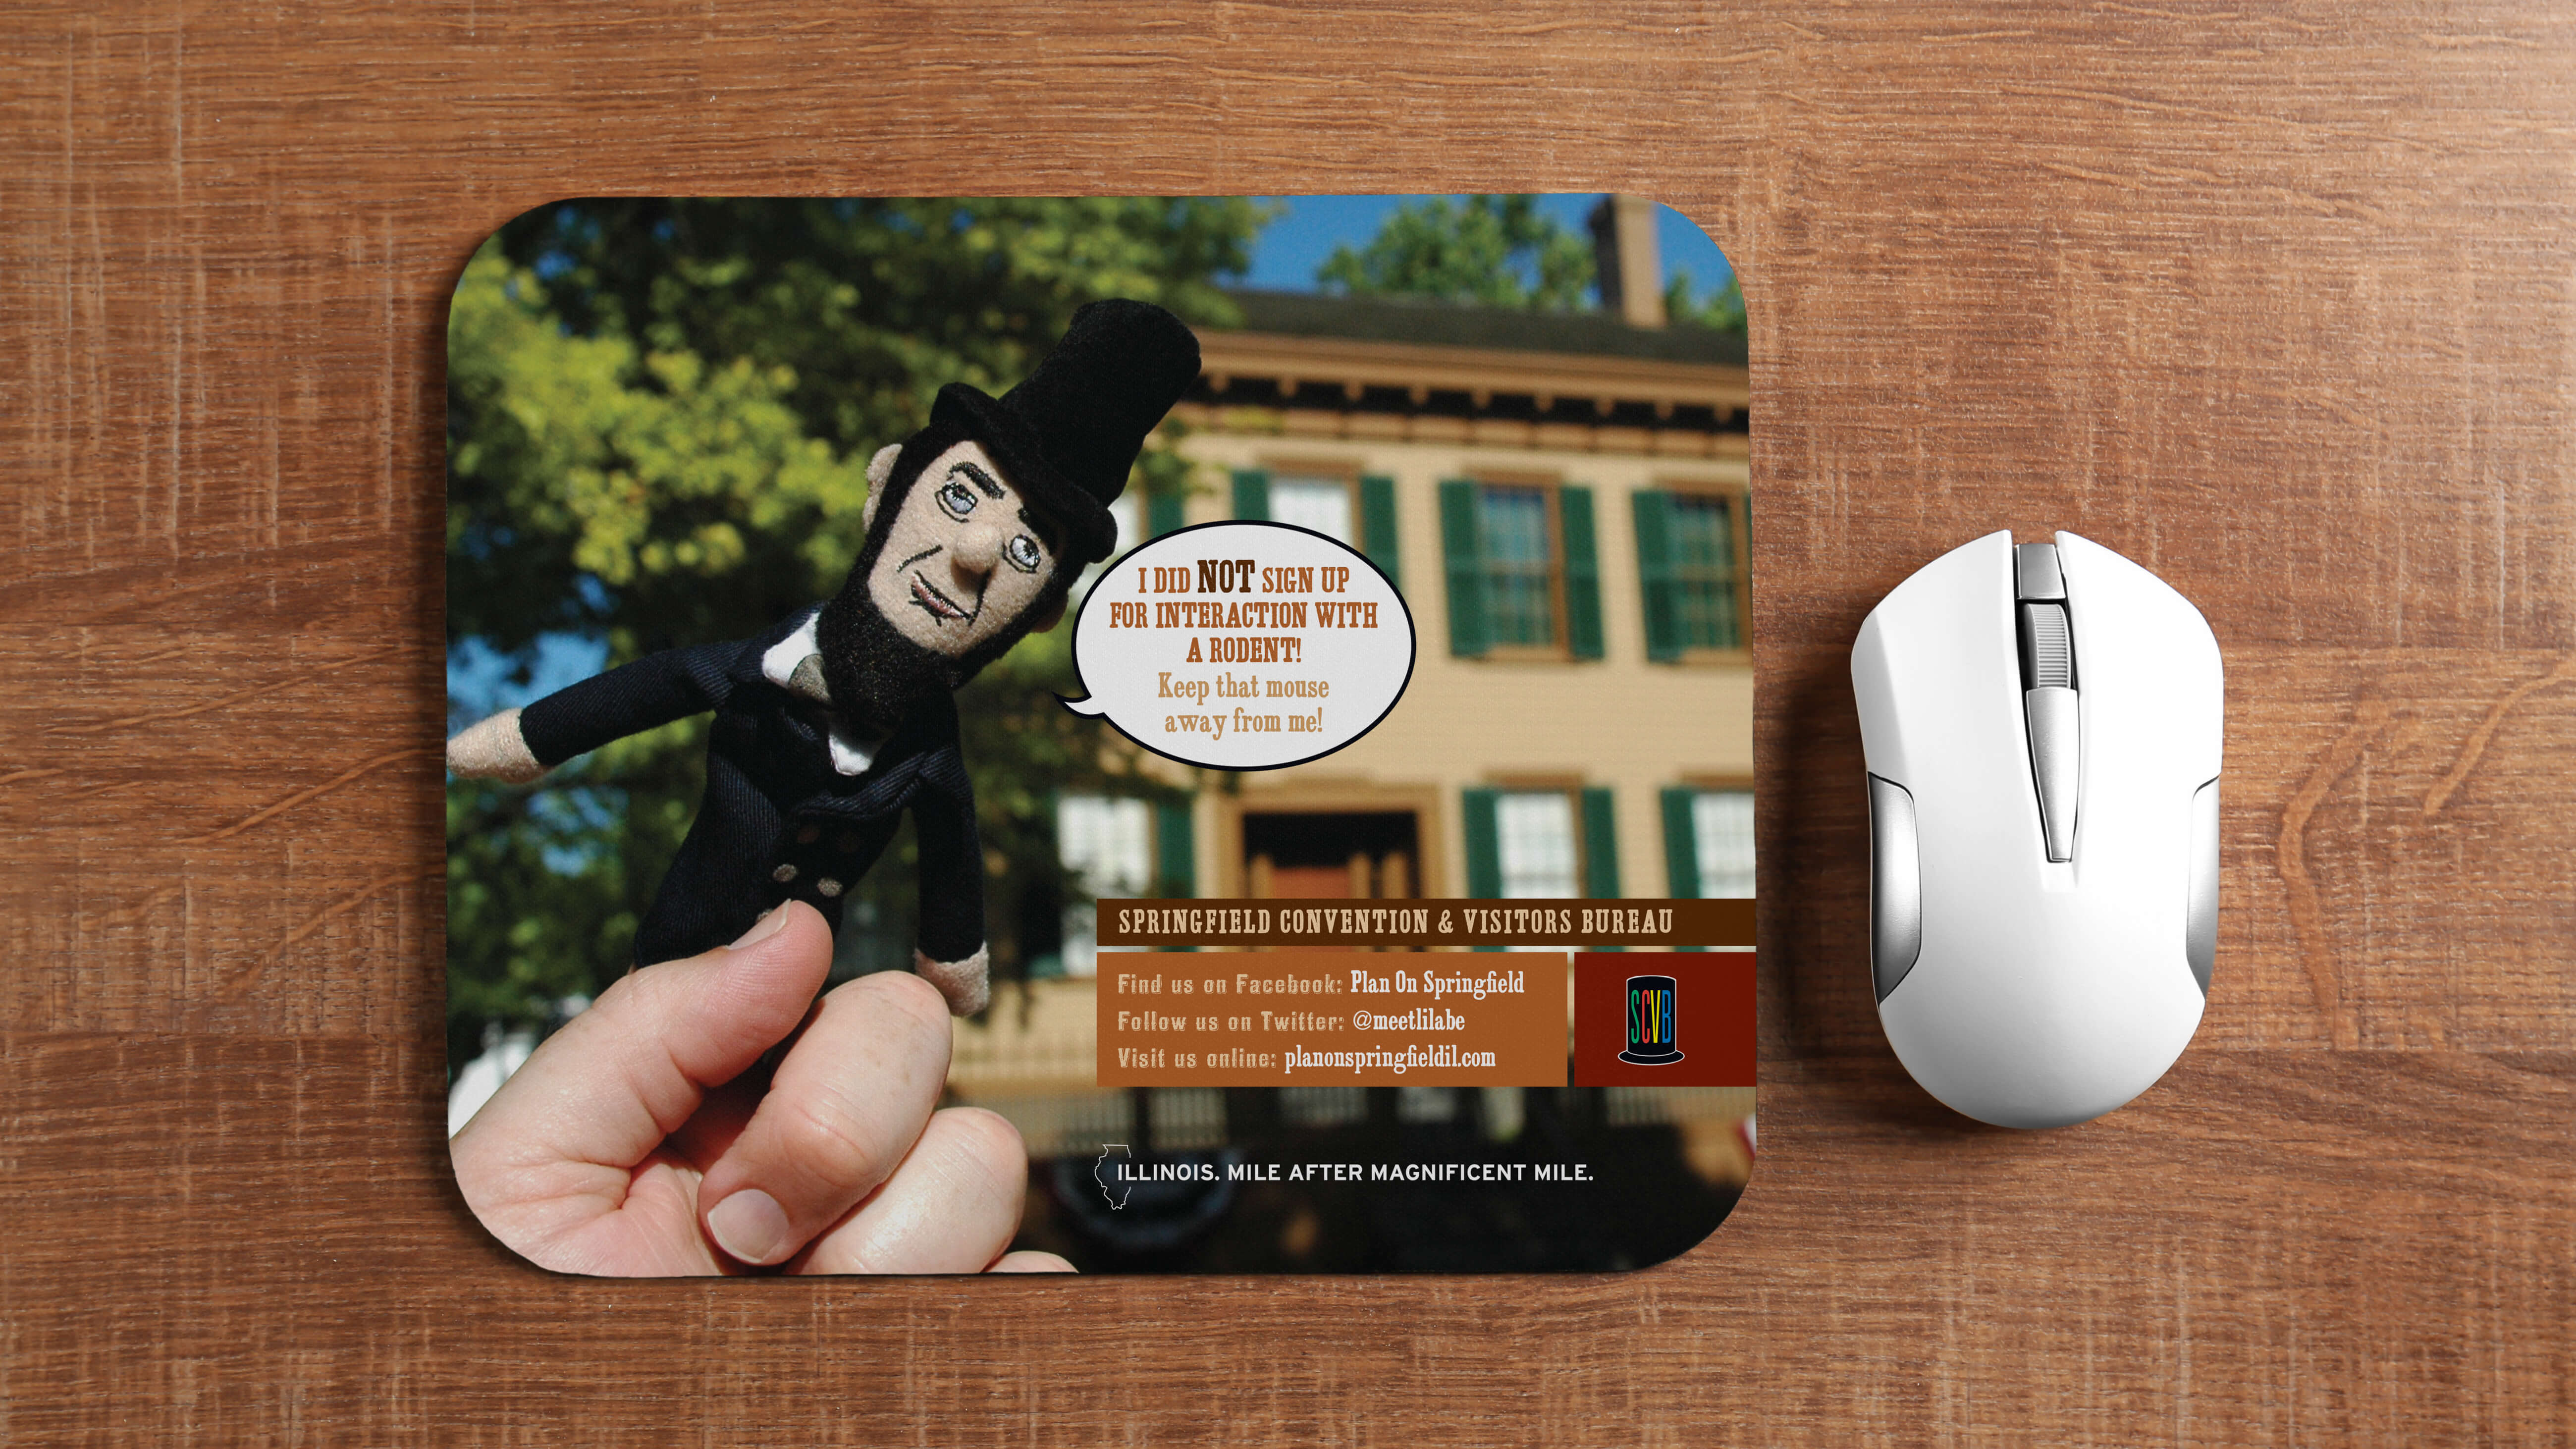 Springfield Convention & Visitors Bureau | Lil' Abe Marketing Campaign